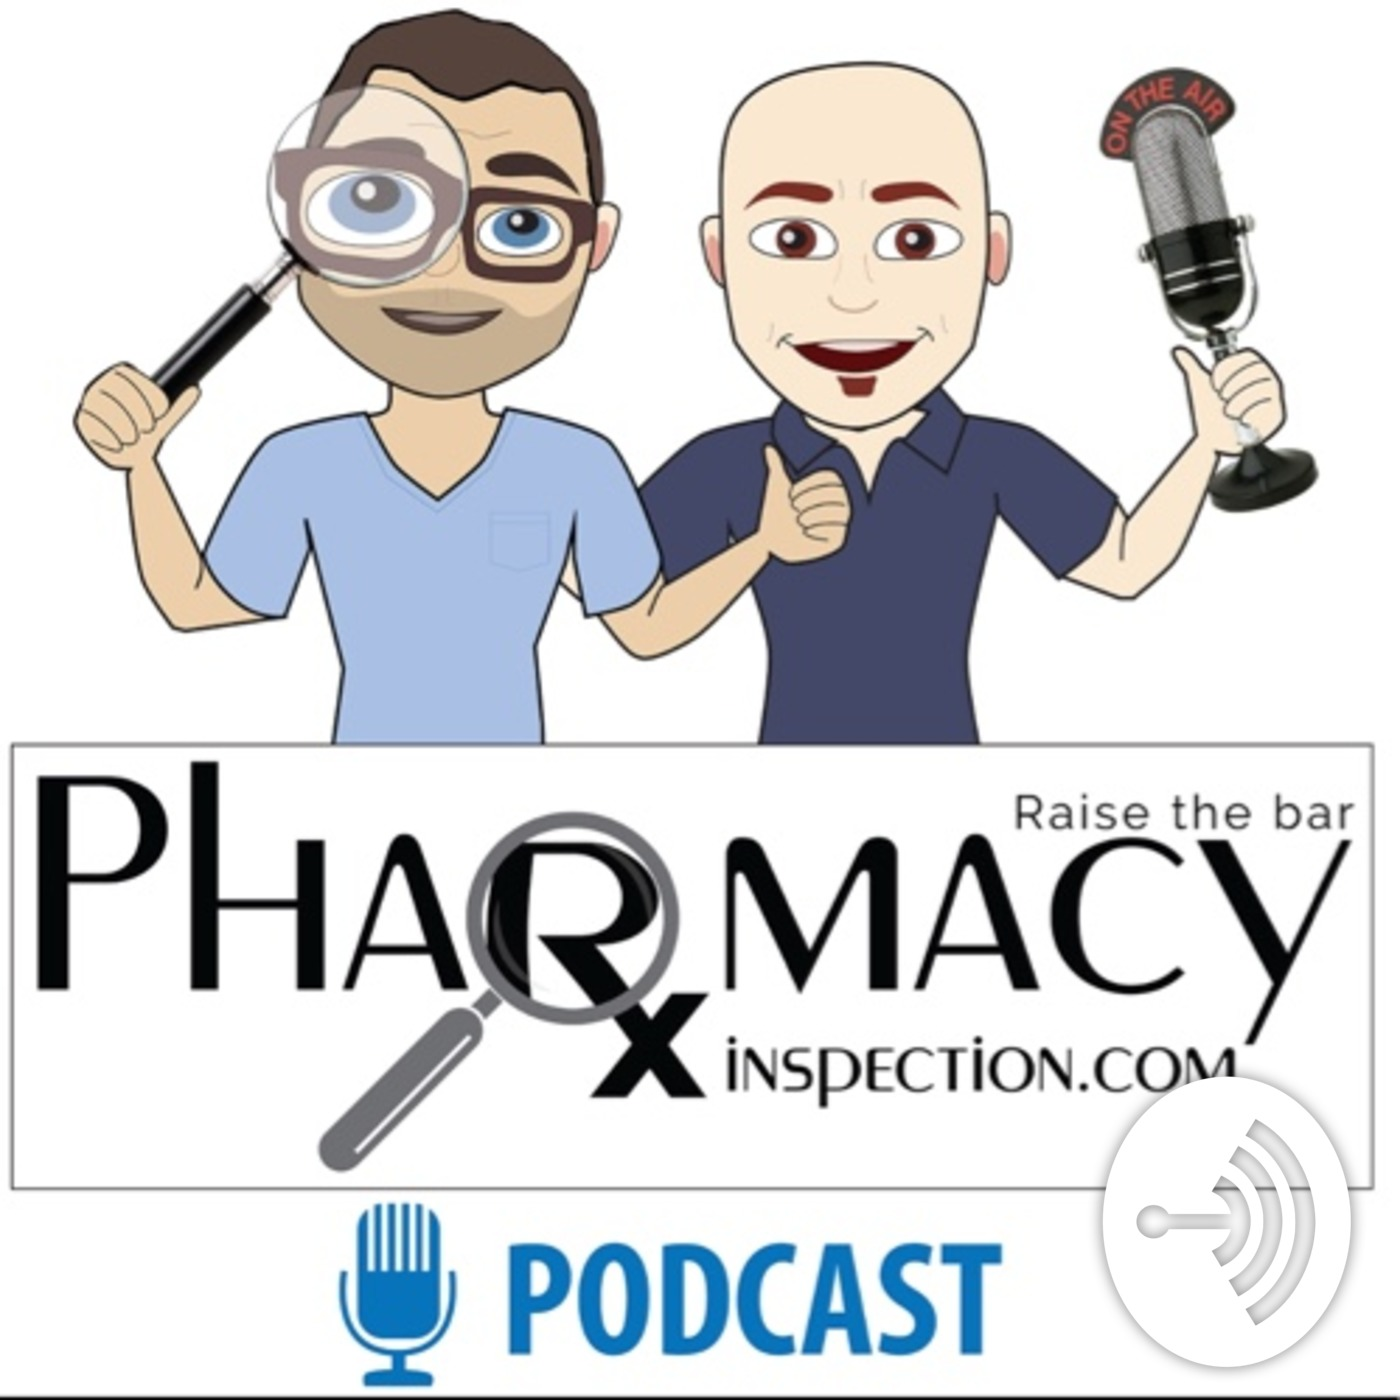 Pharmacy Inspection Podcast Episode 18 - Denise Frank